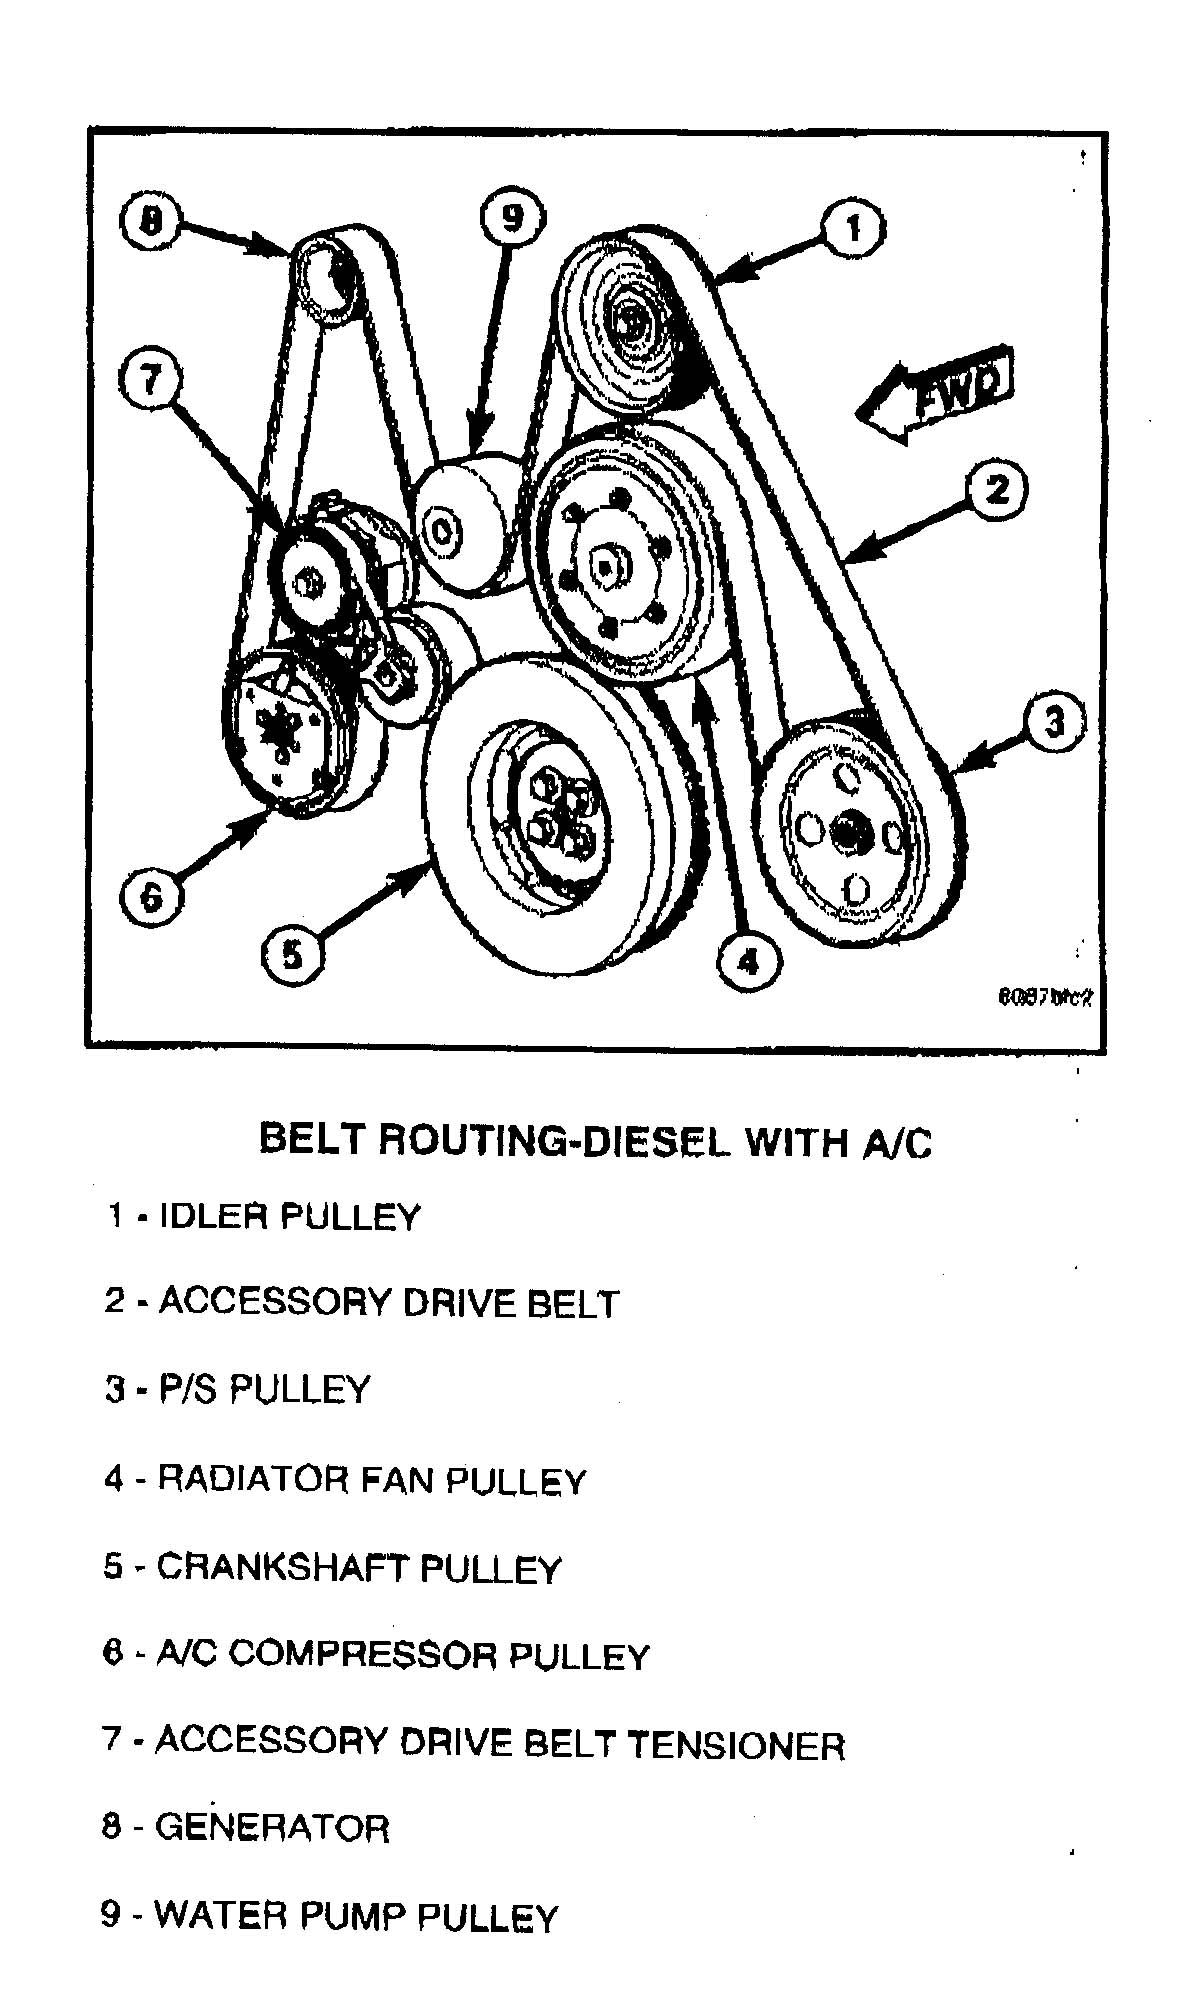 ford 6 7 diesel serpentine belt diagram  ford  auto fuse box diagram